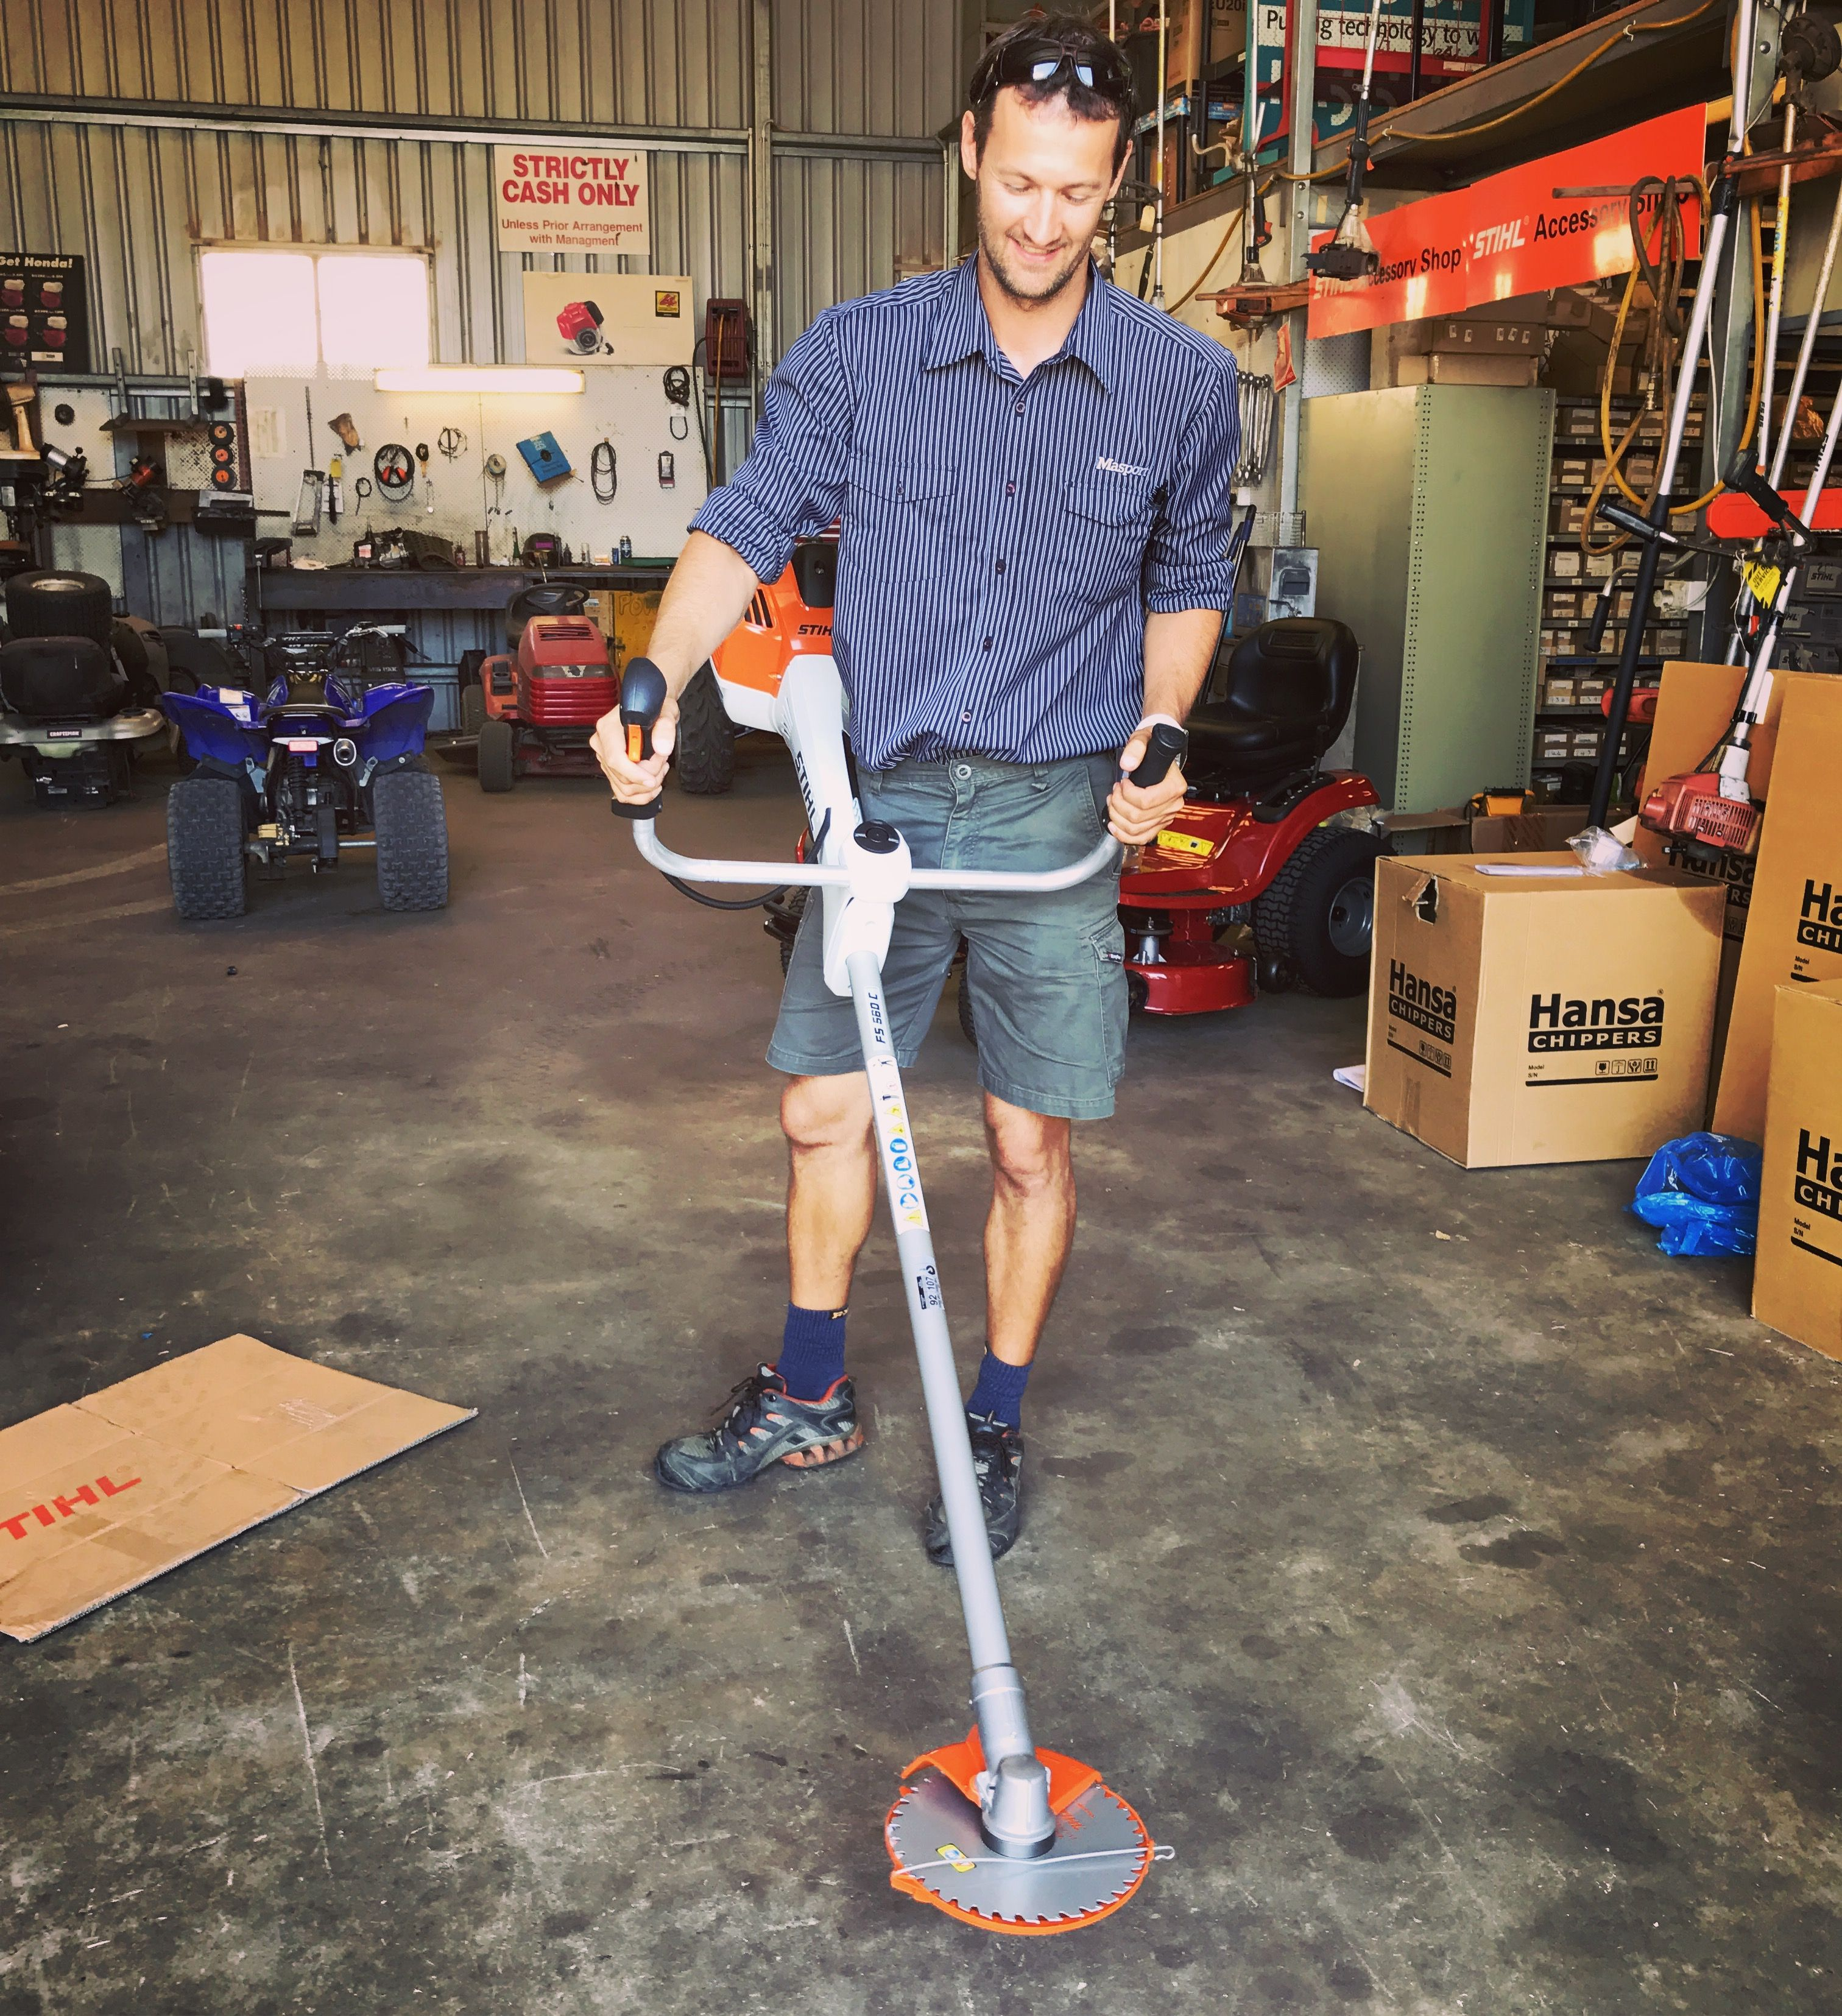 Good, better, Stihl FS 560 C-EM Clearing Saw for professionals